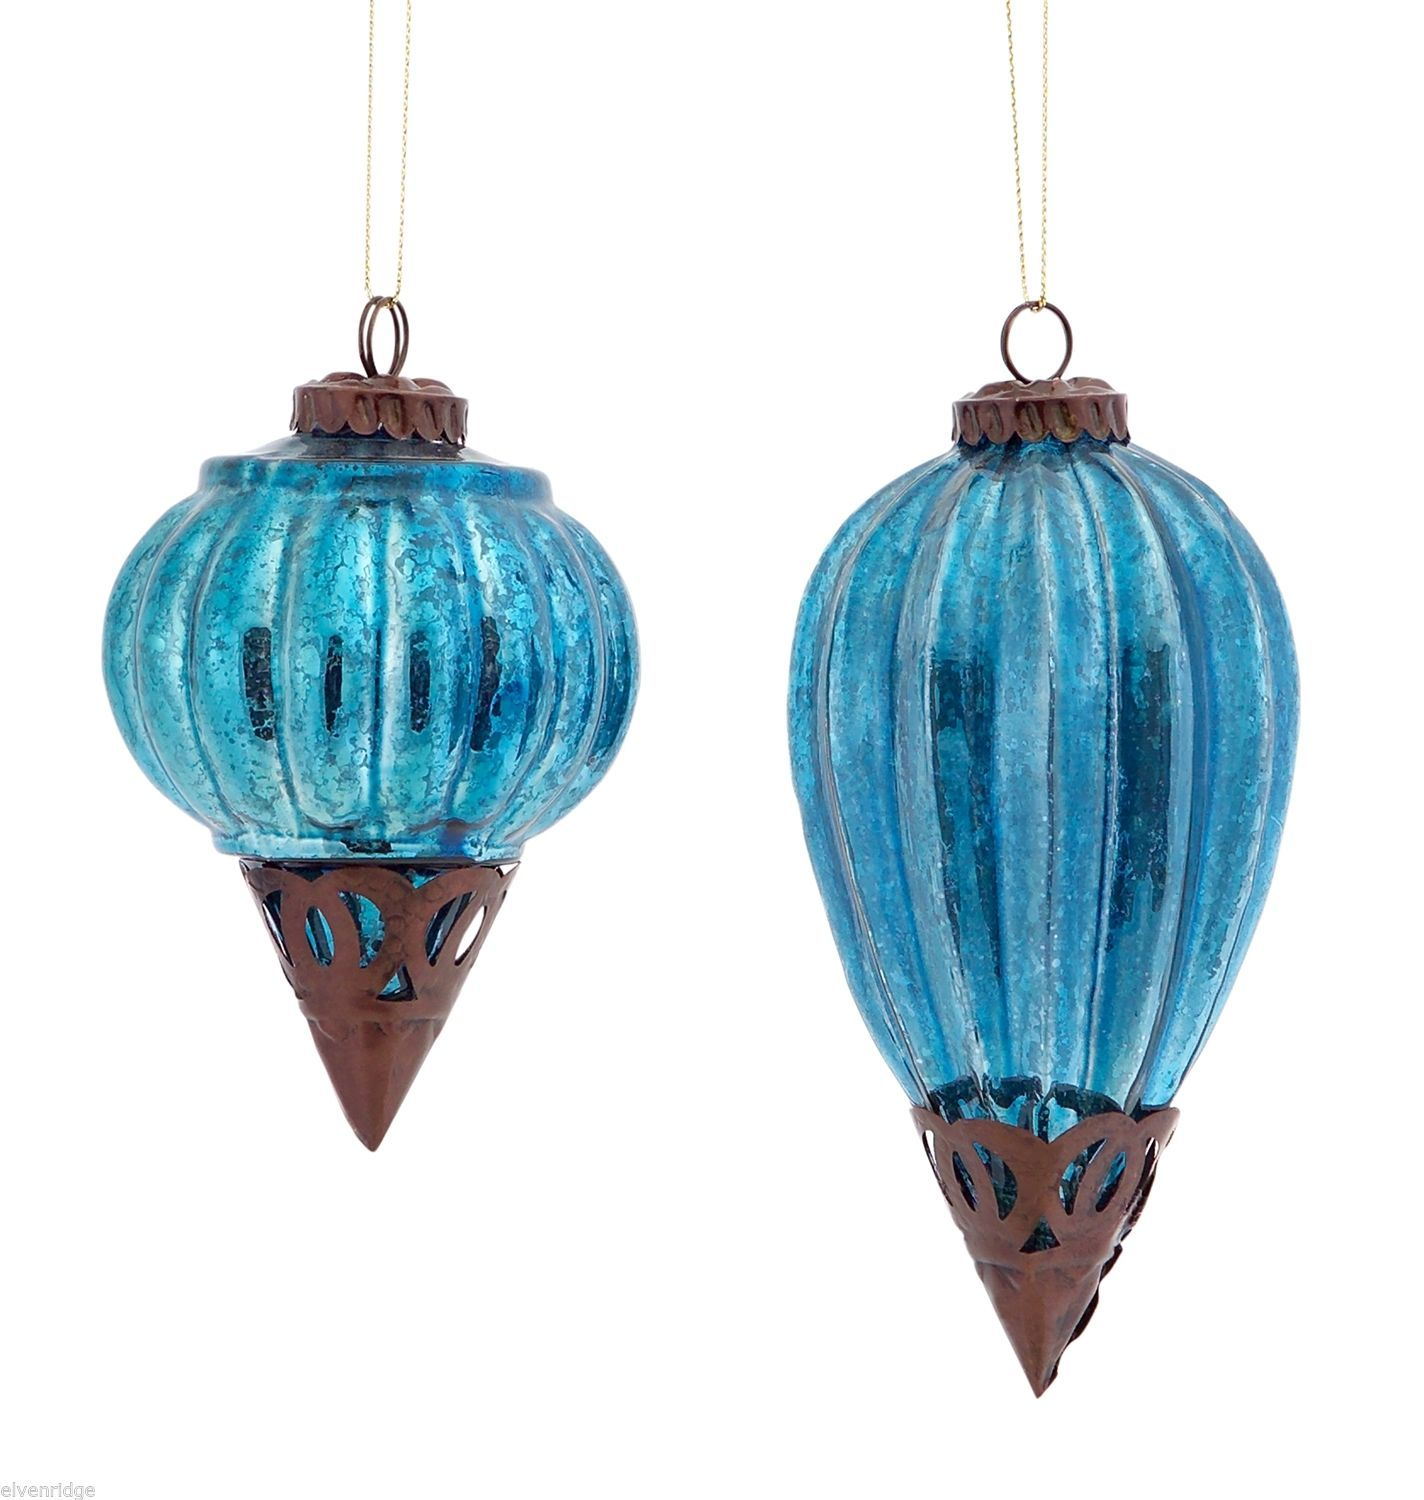 New Glass Metal Ornaments 5 & 7 4 Inches High Set of 2 teal blue vintage look